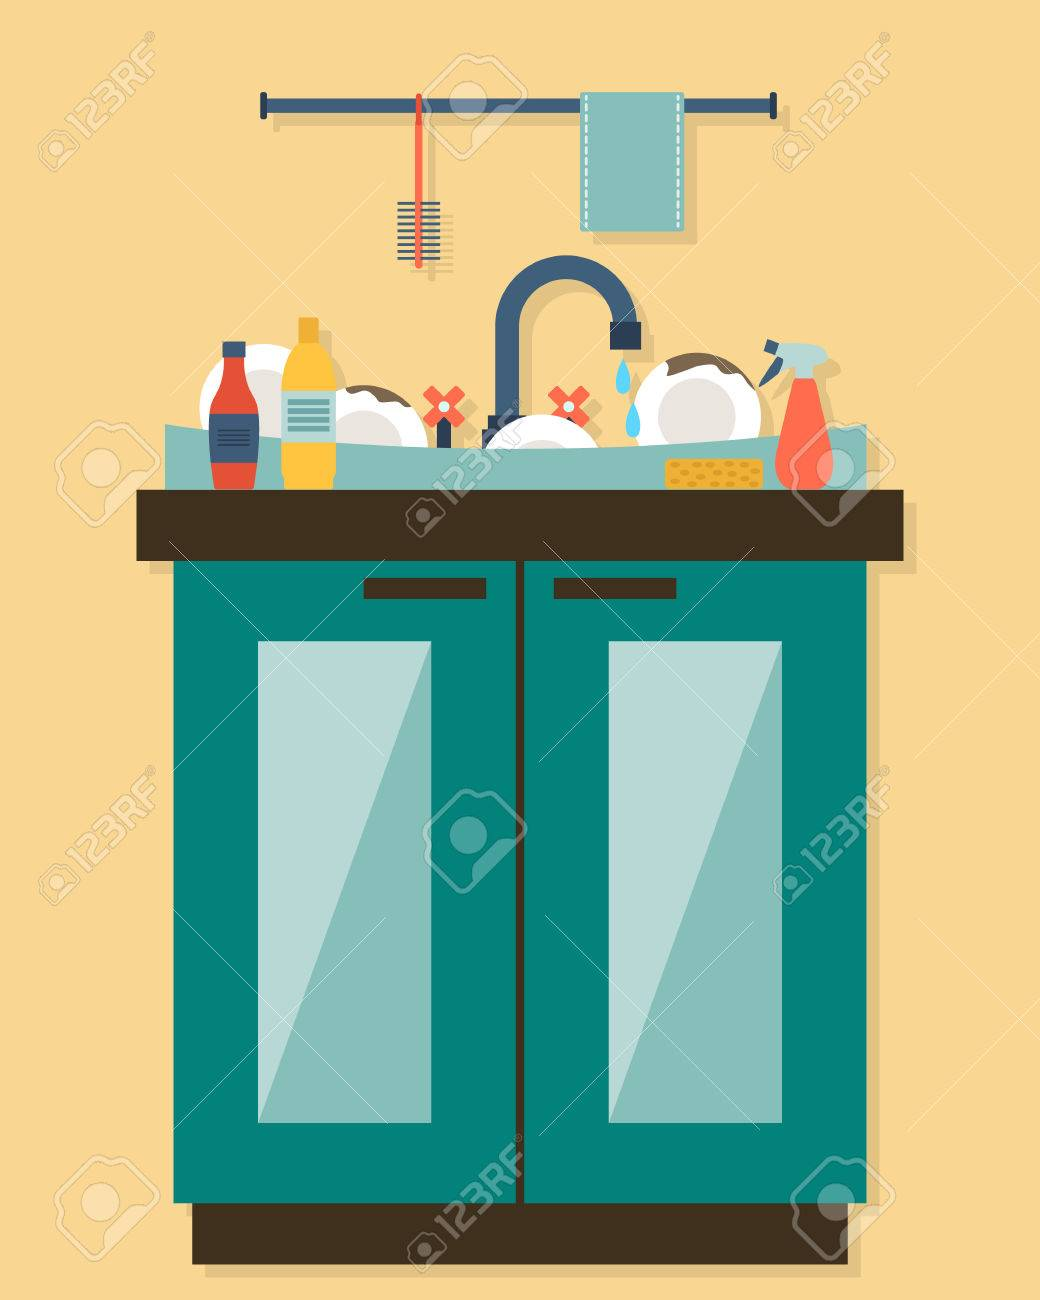 Kitchen sink with kitchenware, utensil, dishes, dish detergent and a sponge. Flat style vector illustration. - 41513184